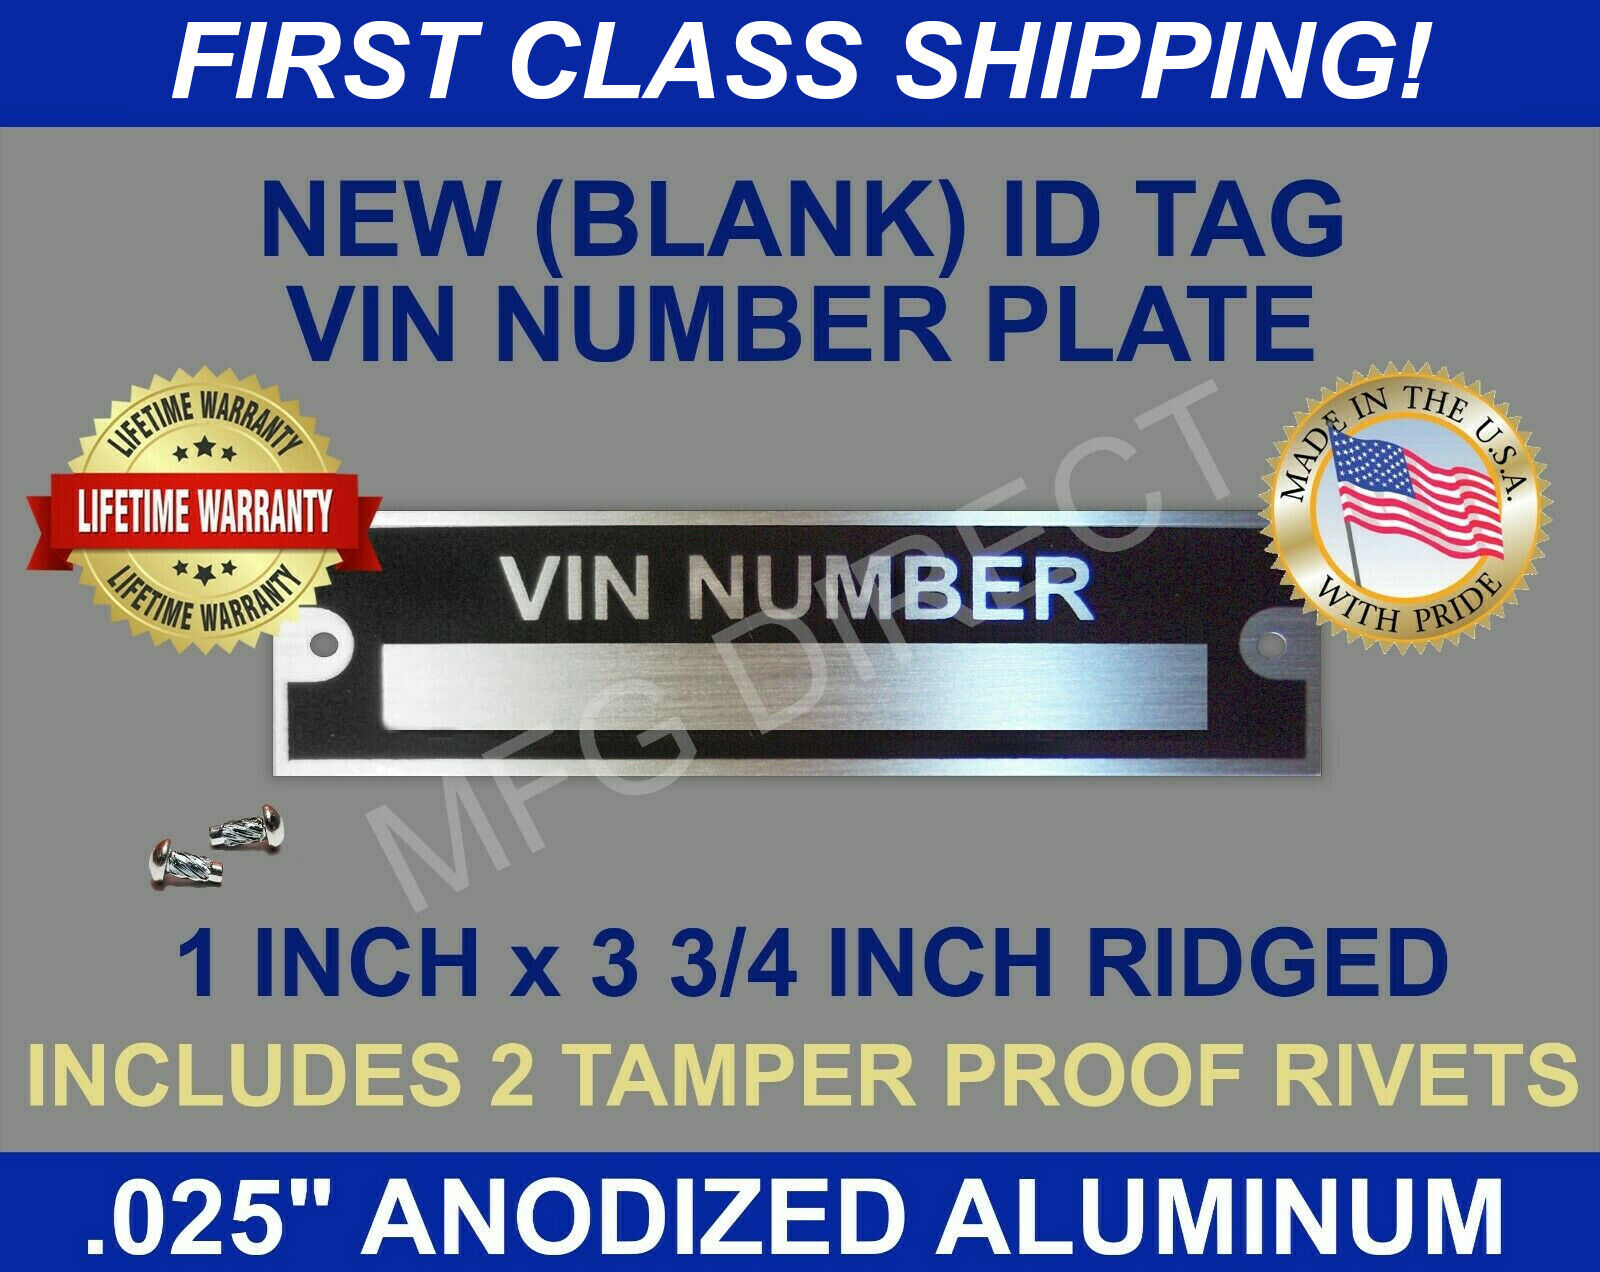 New Blank Vin Serial Number Plate Identification Vehicle Id Tag Free 1957 Chevrolet 1 Of 2only 3 Available